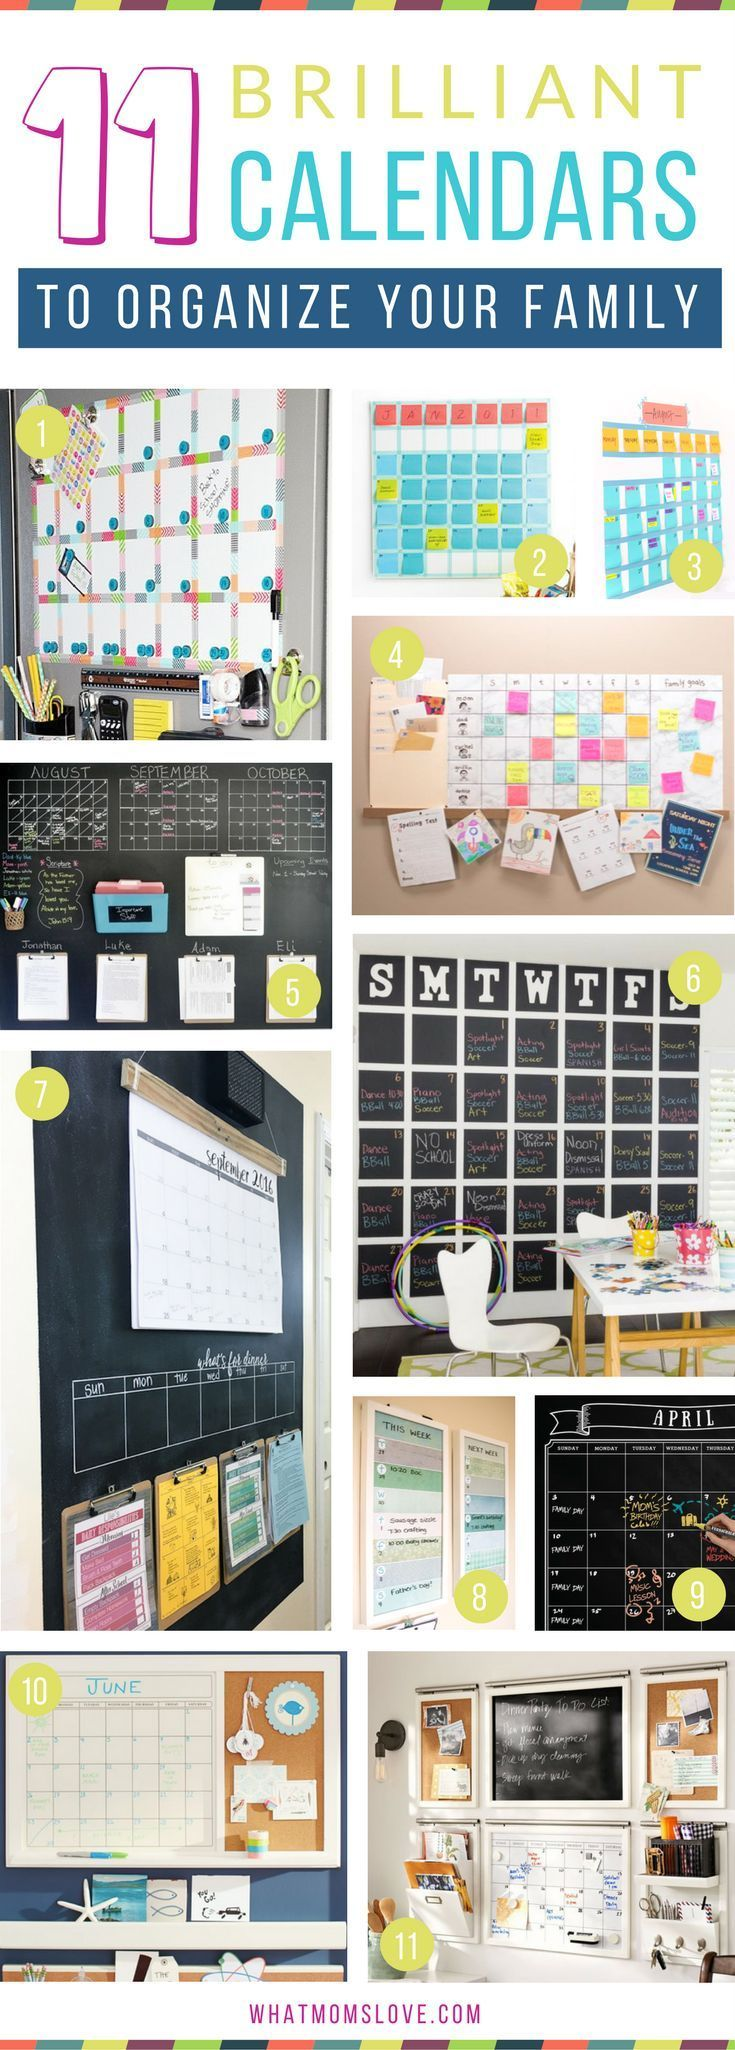 Calendar Organization Ideas : Simple steps to get ridiculously organized for a stress